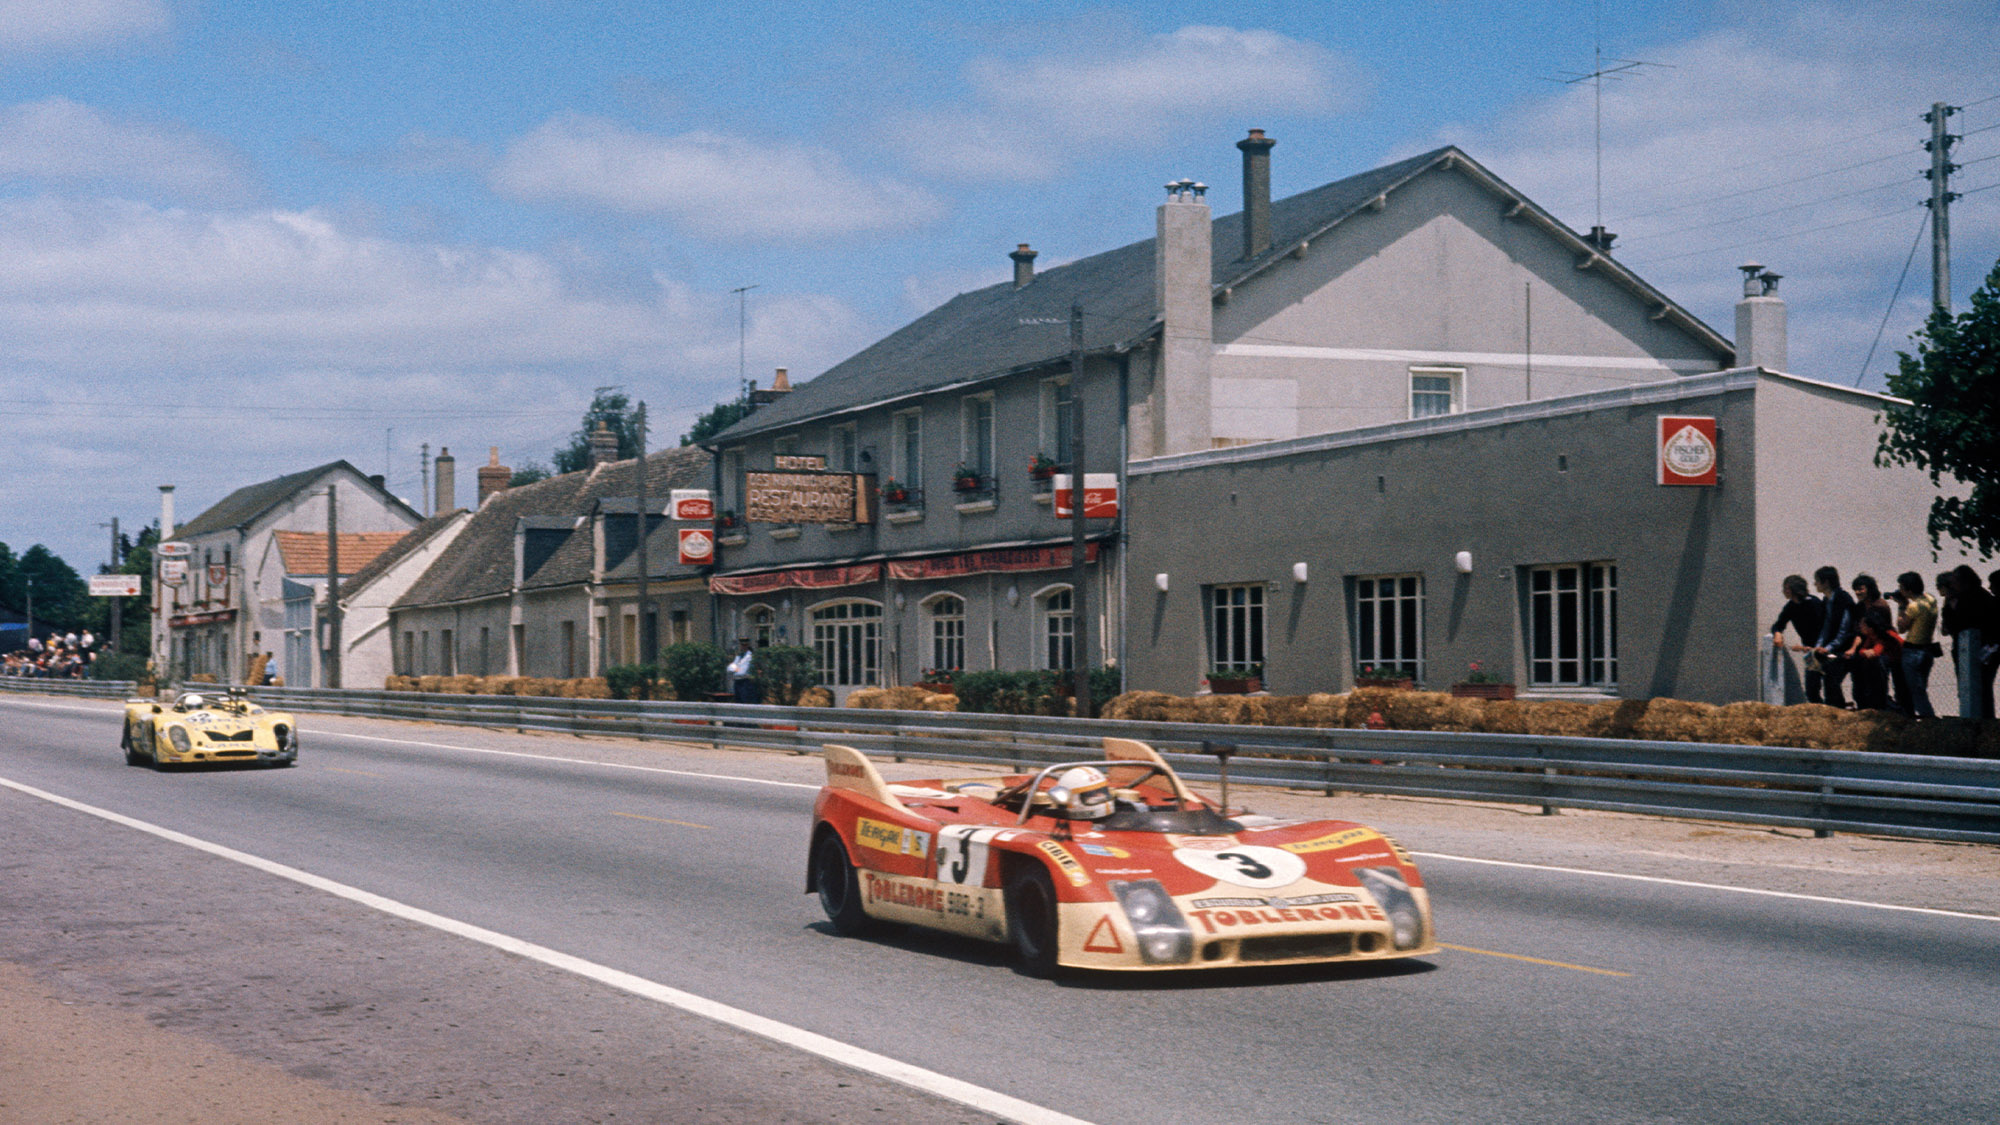 The Juan Fernandez Bernard Cheneviere and Francisco Torredemer Porsche 908 drives past the Hotel Les Hunaudieres in the 1973 Le Mans 24 hours